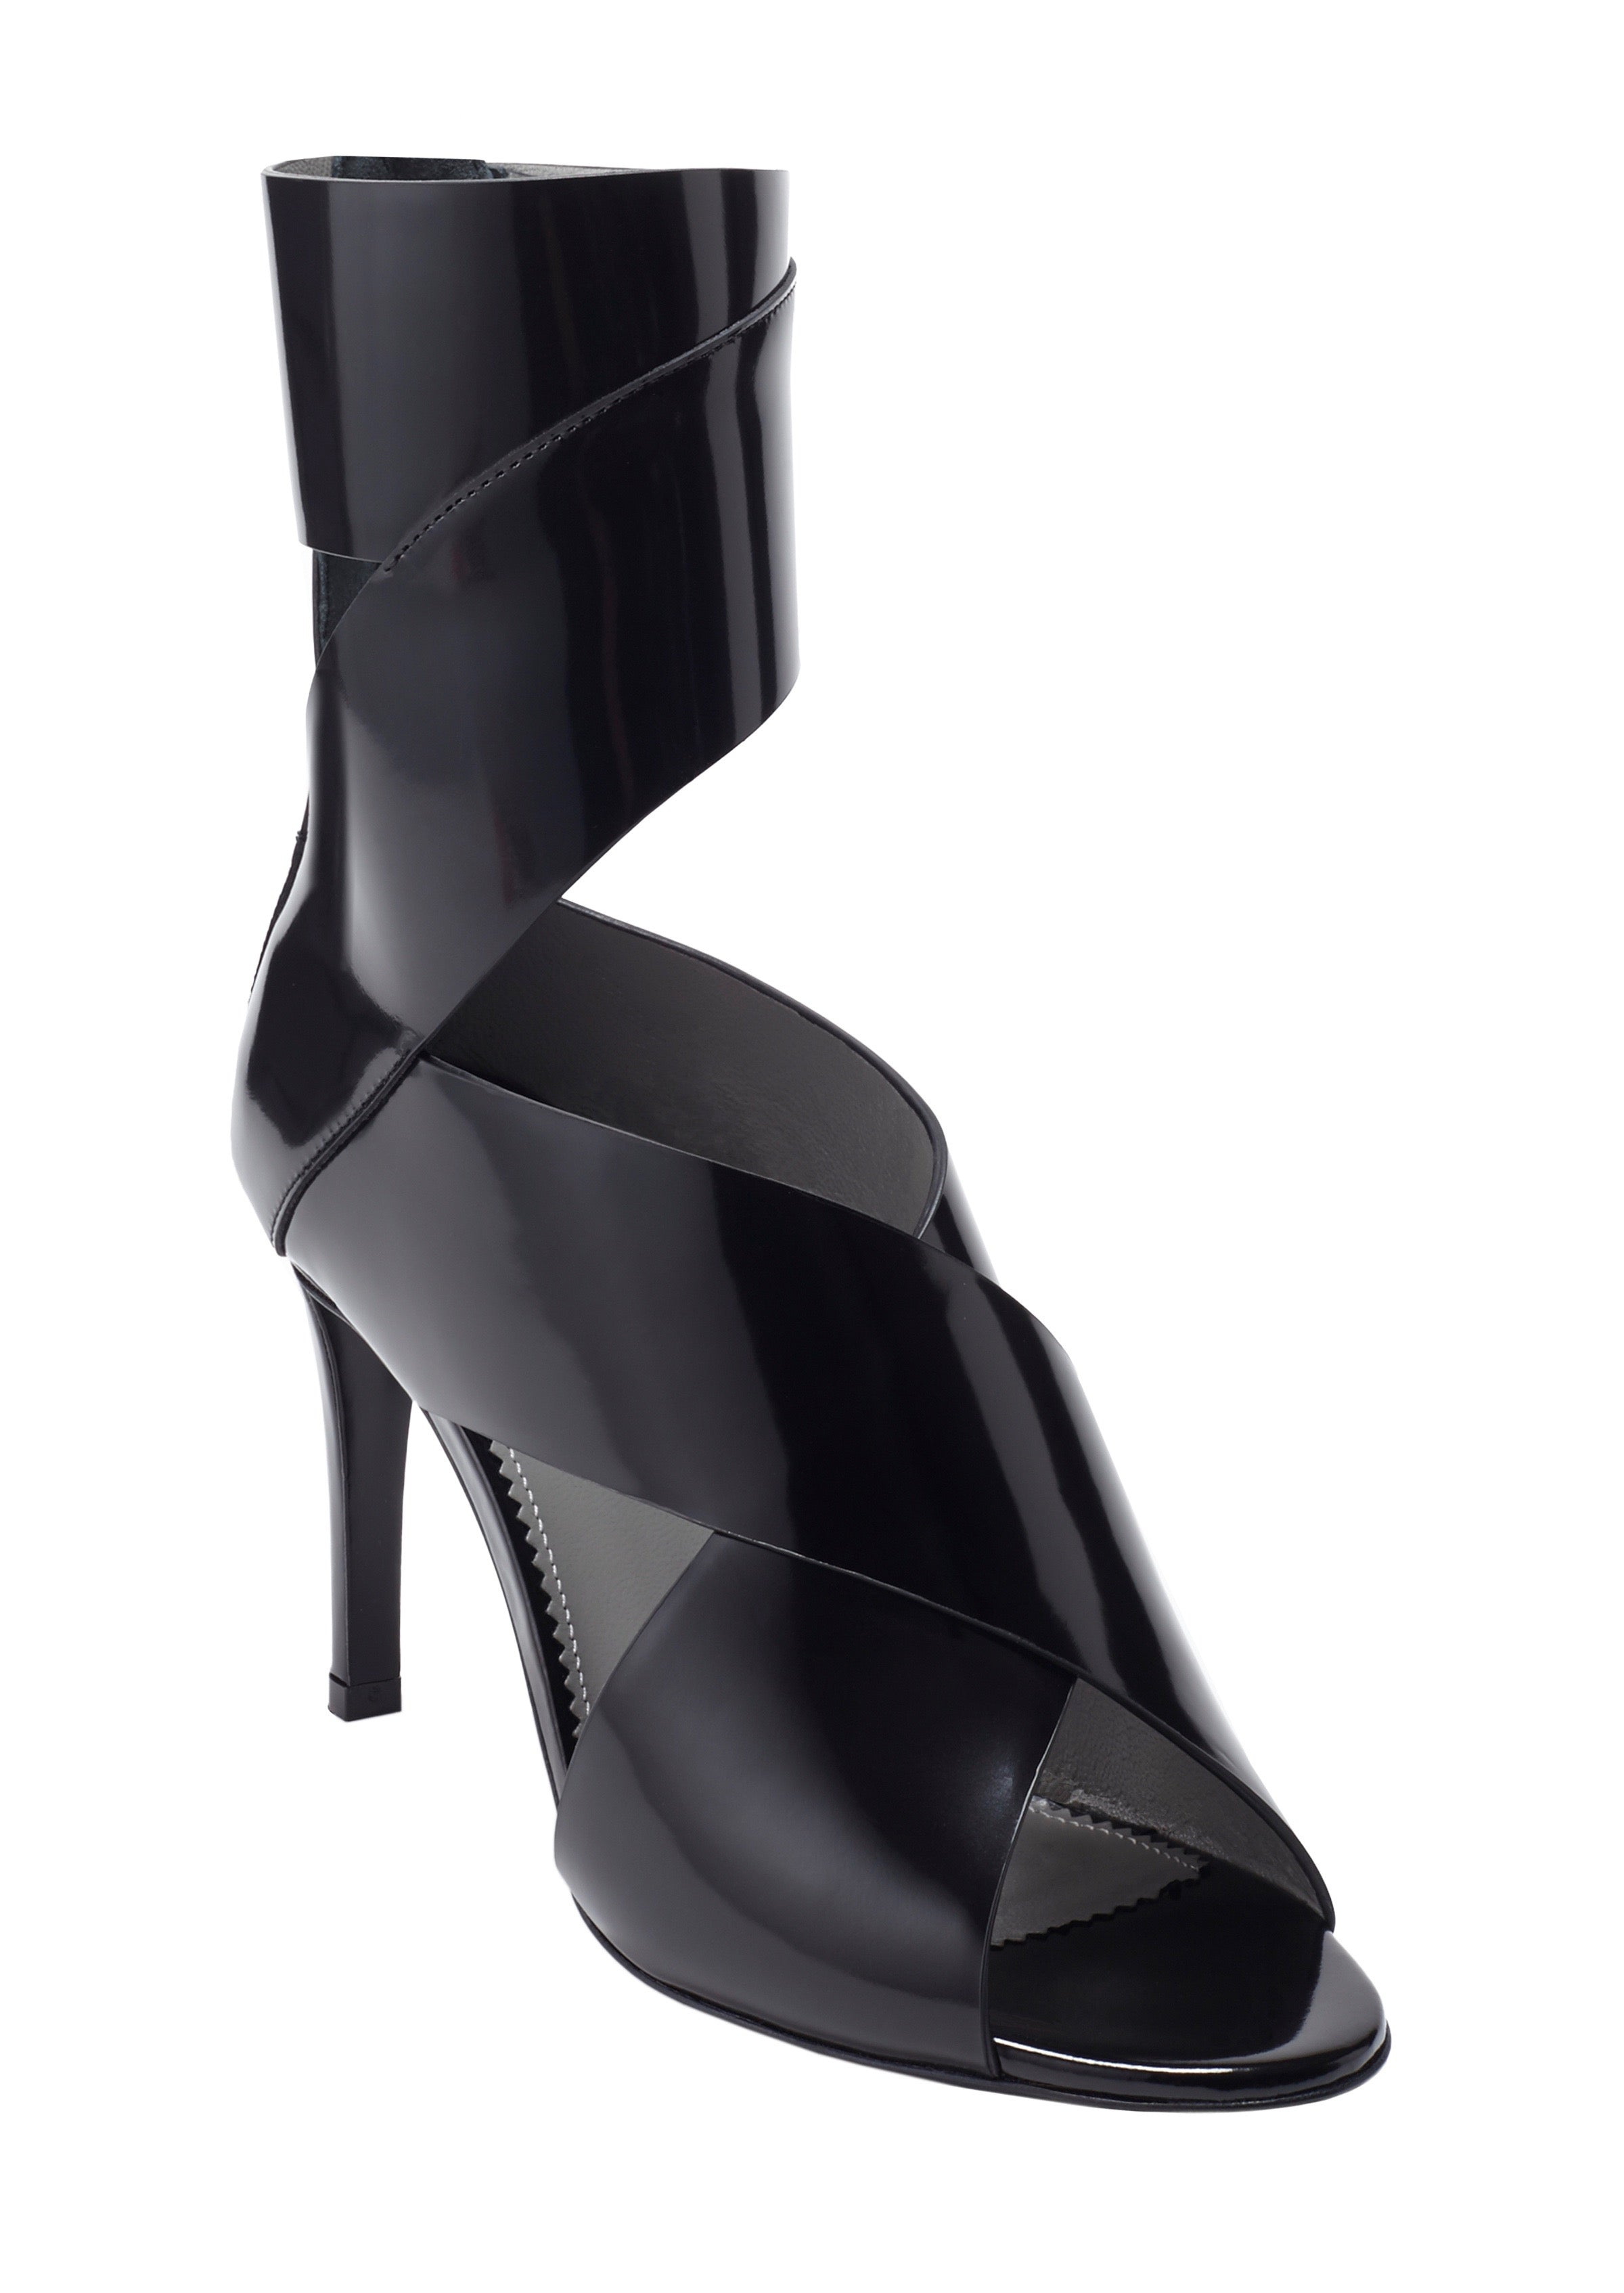 NADJA BLACK BRUSHED CALF SANDAL - Monika Chiang